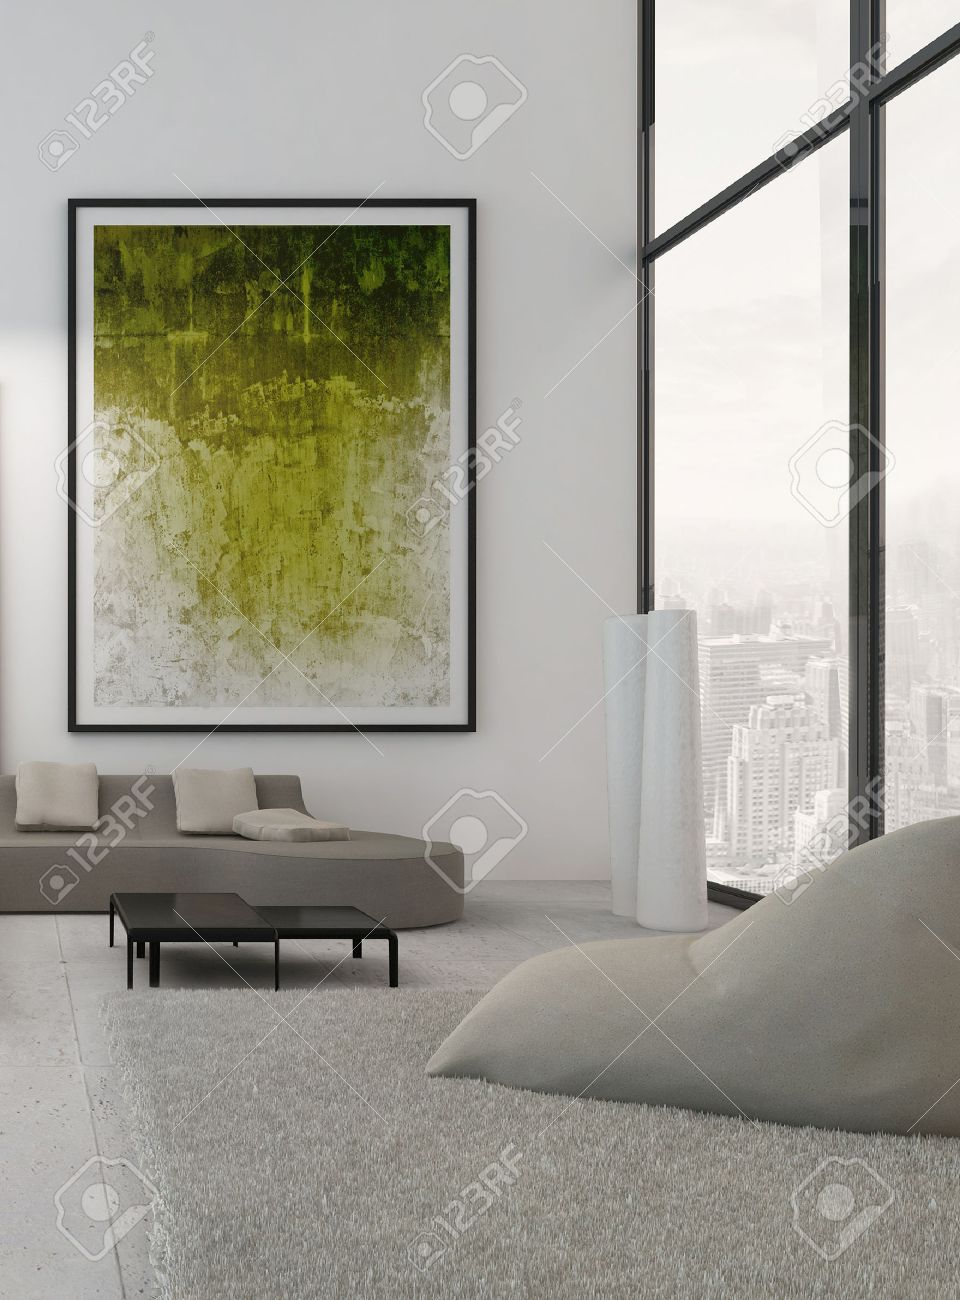 modern living room interior with green paintings on wall stock modern living room interior with green paintings on wall stock photo 29023070